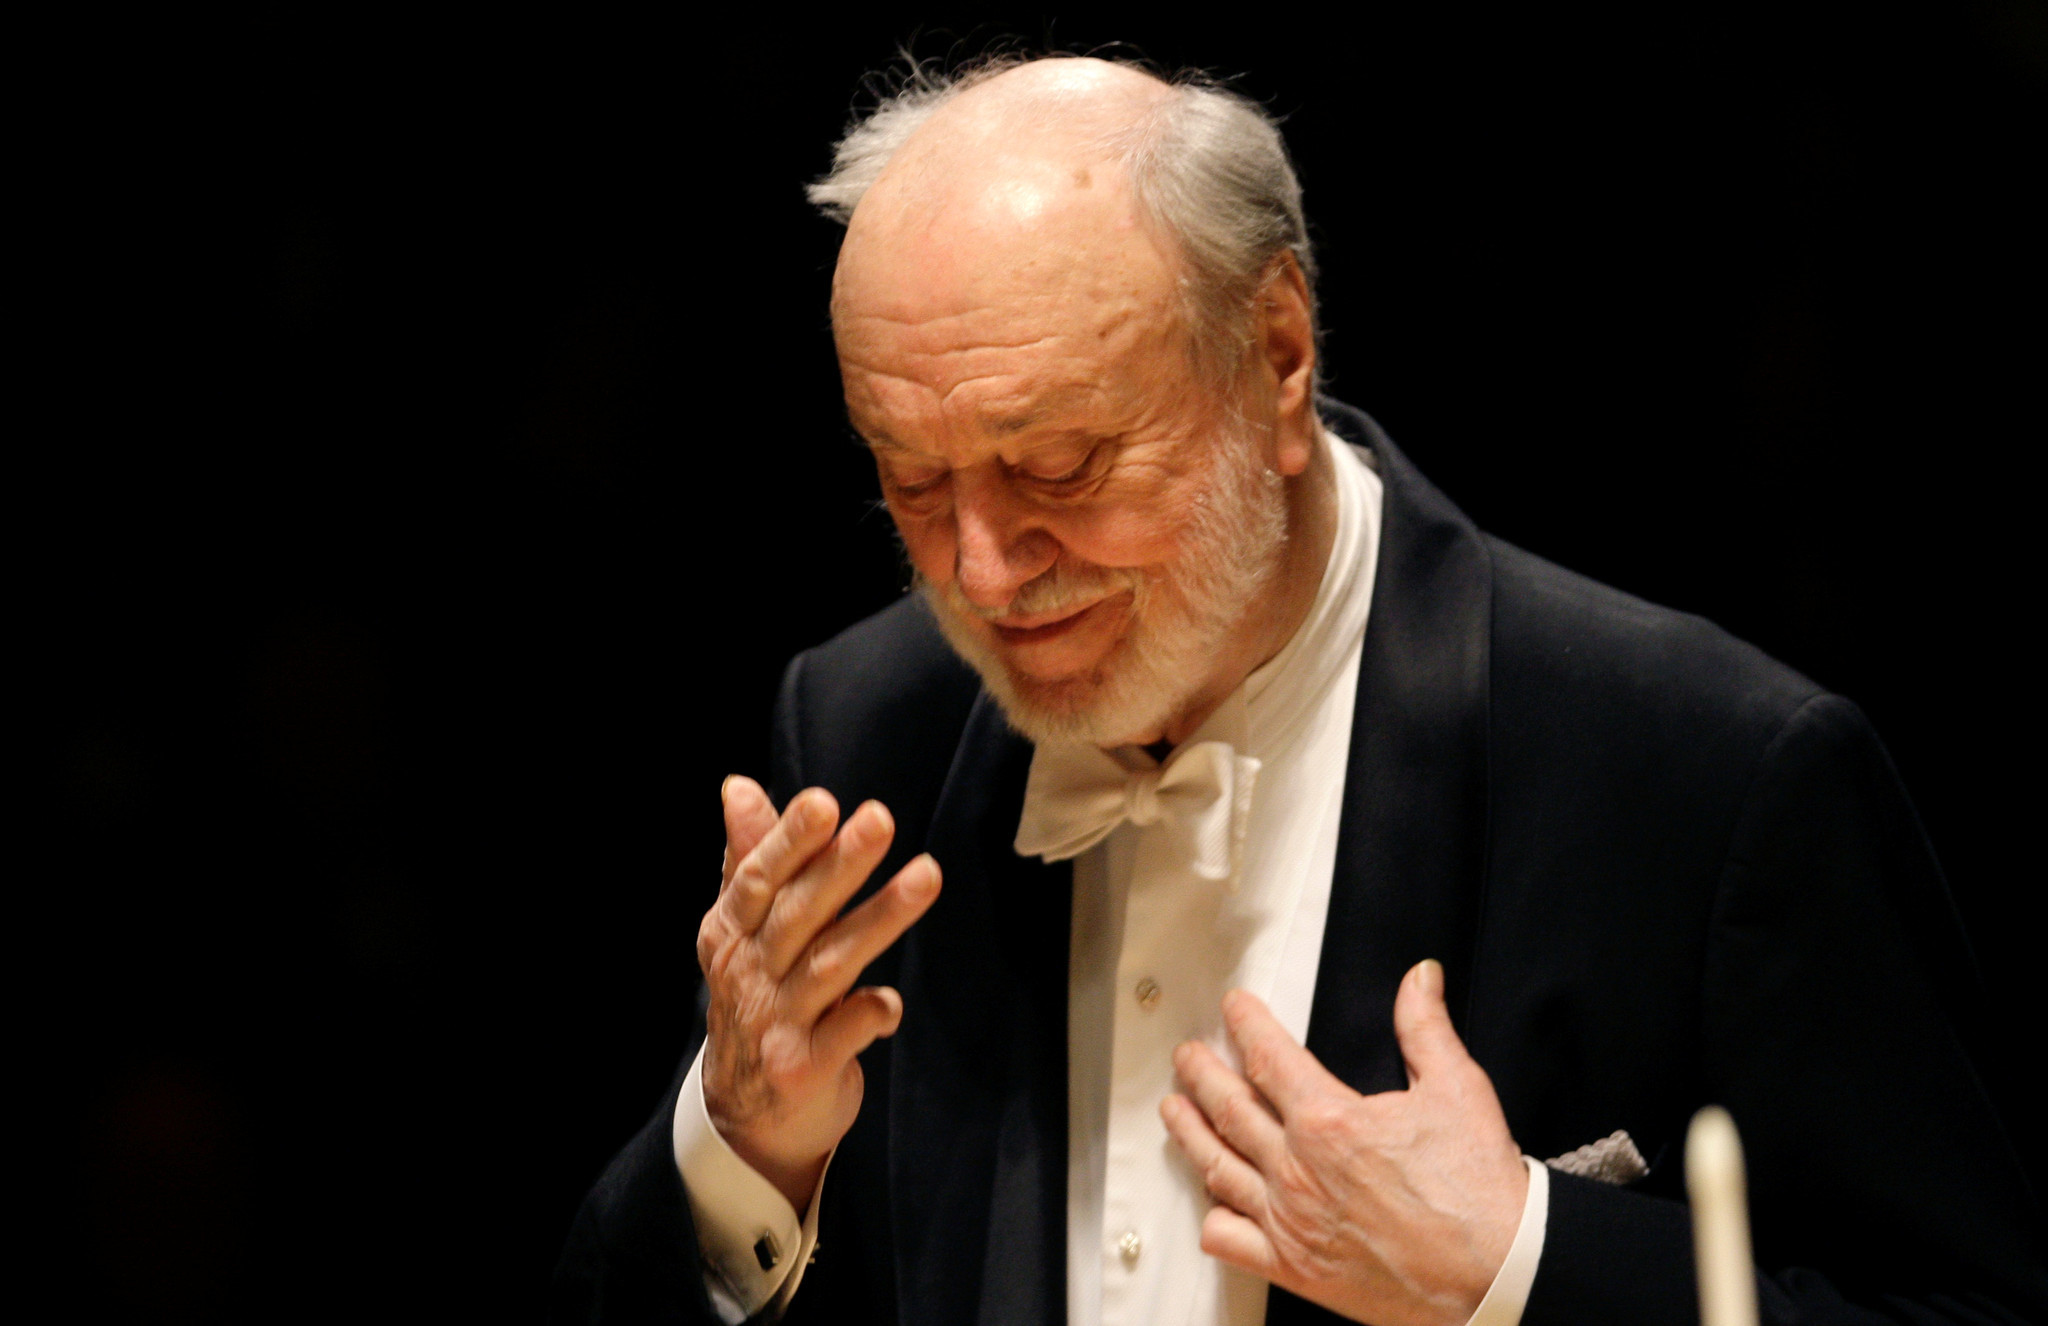 Remembering Conductor Kurt Masur With A Sublime Strauss Song Baltimore Sun